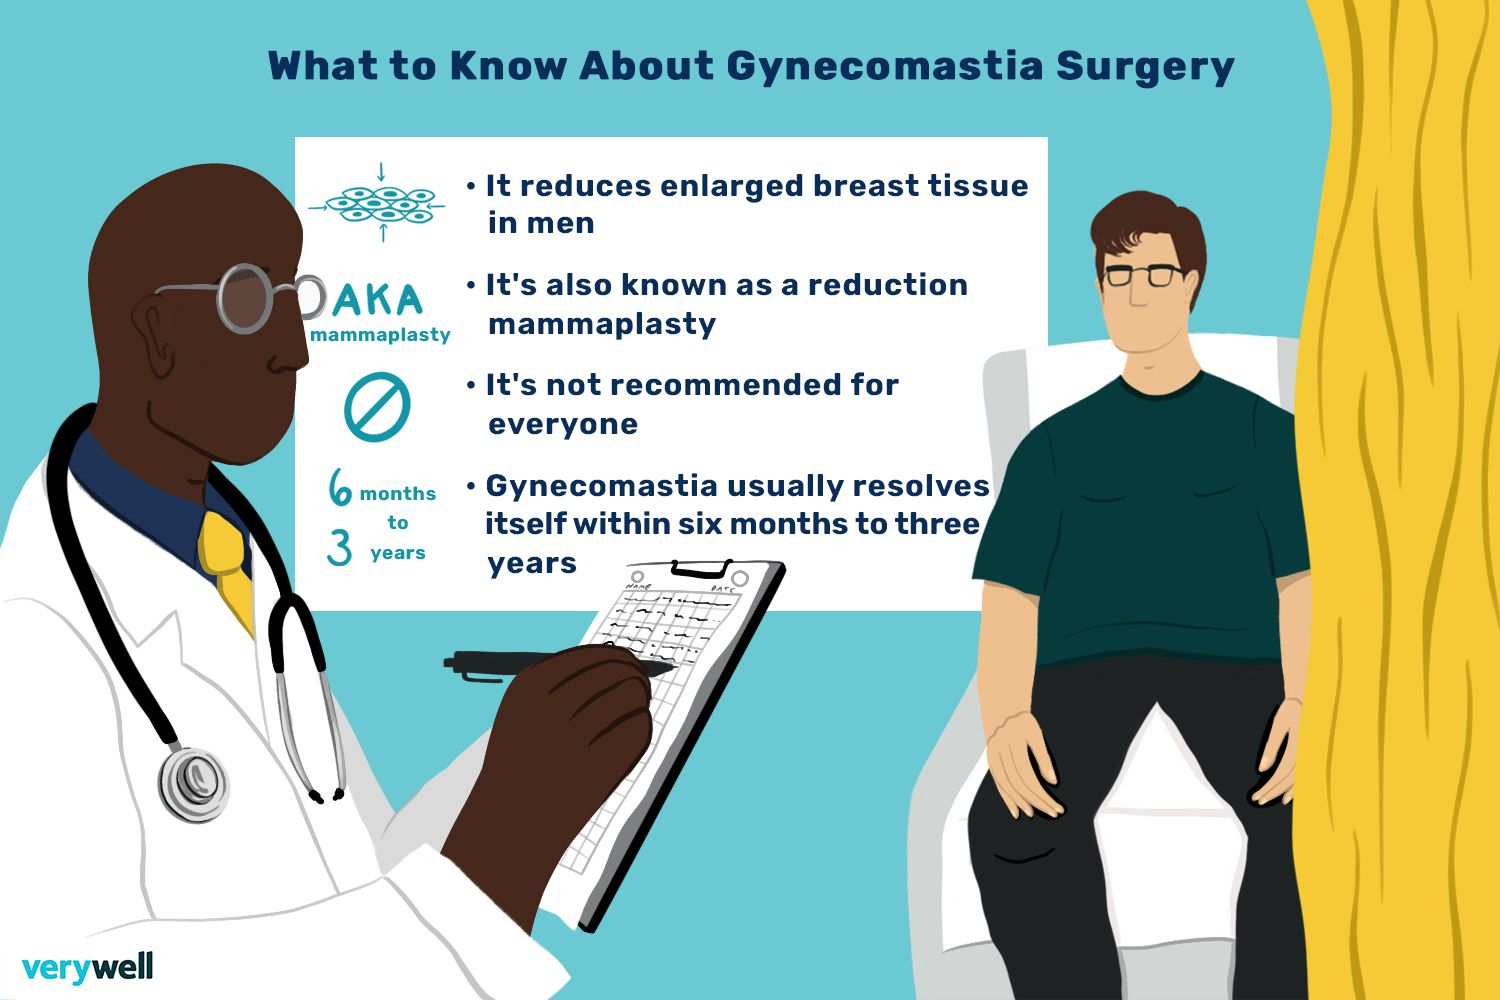 What to Know About Gynecomastia Surgery